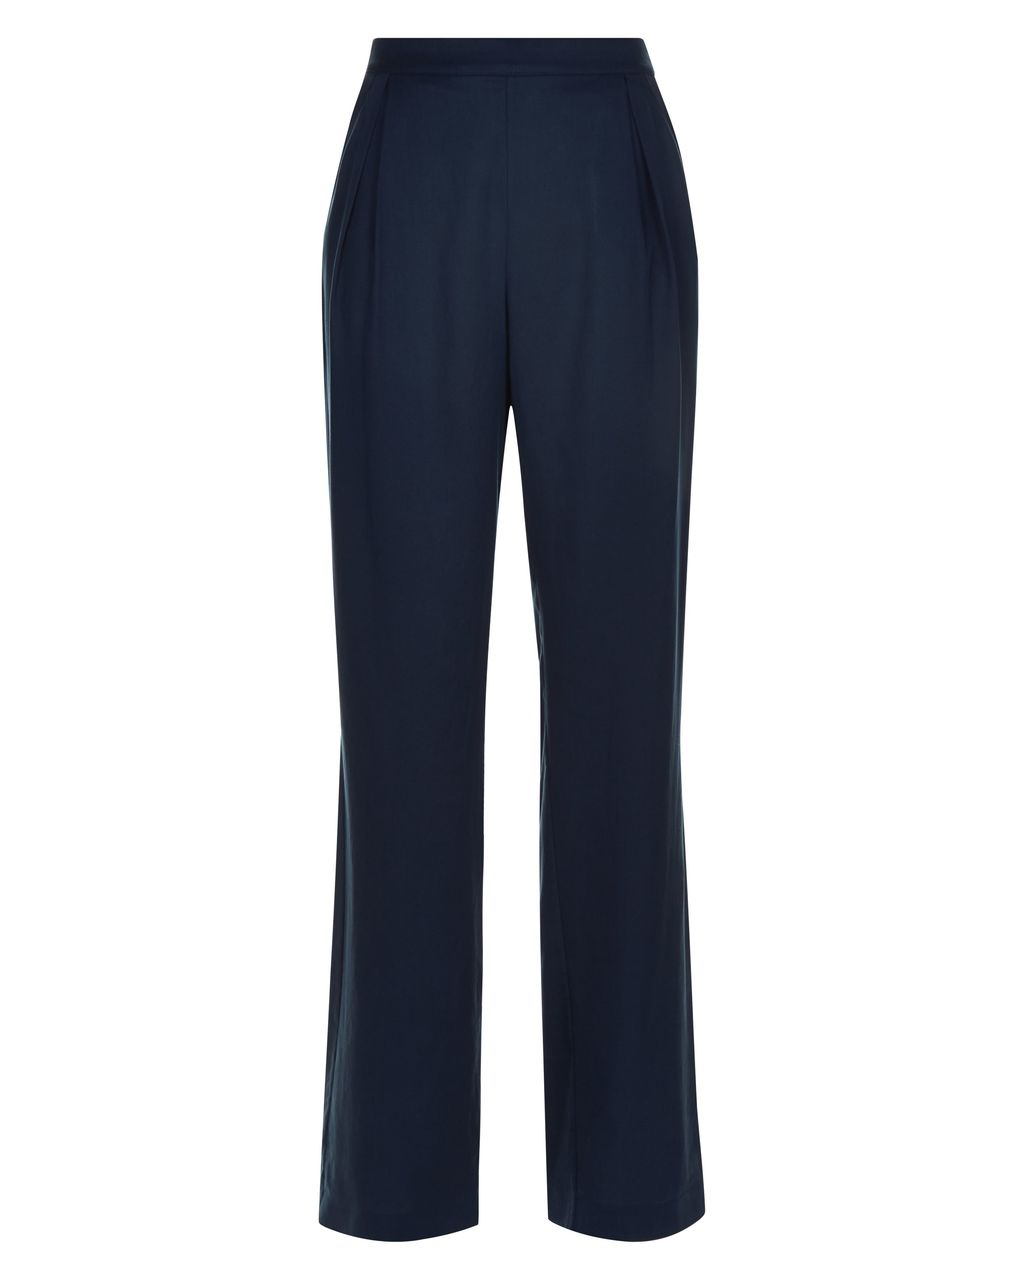 City Palazzo Trousers, Navy - length: standard; pattern: plain; waist: high rise; predominant colour: navy; fibres: polyester/polyamide - 100%; fit: straight leg; pattern type: fabric; texture group: other - light to midweight; style: standard; occasions: creative work; season: s/s 2016; wardrobe: basic